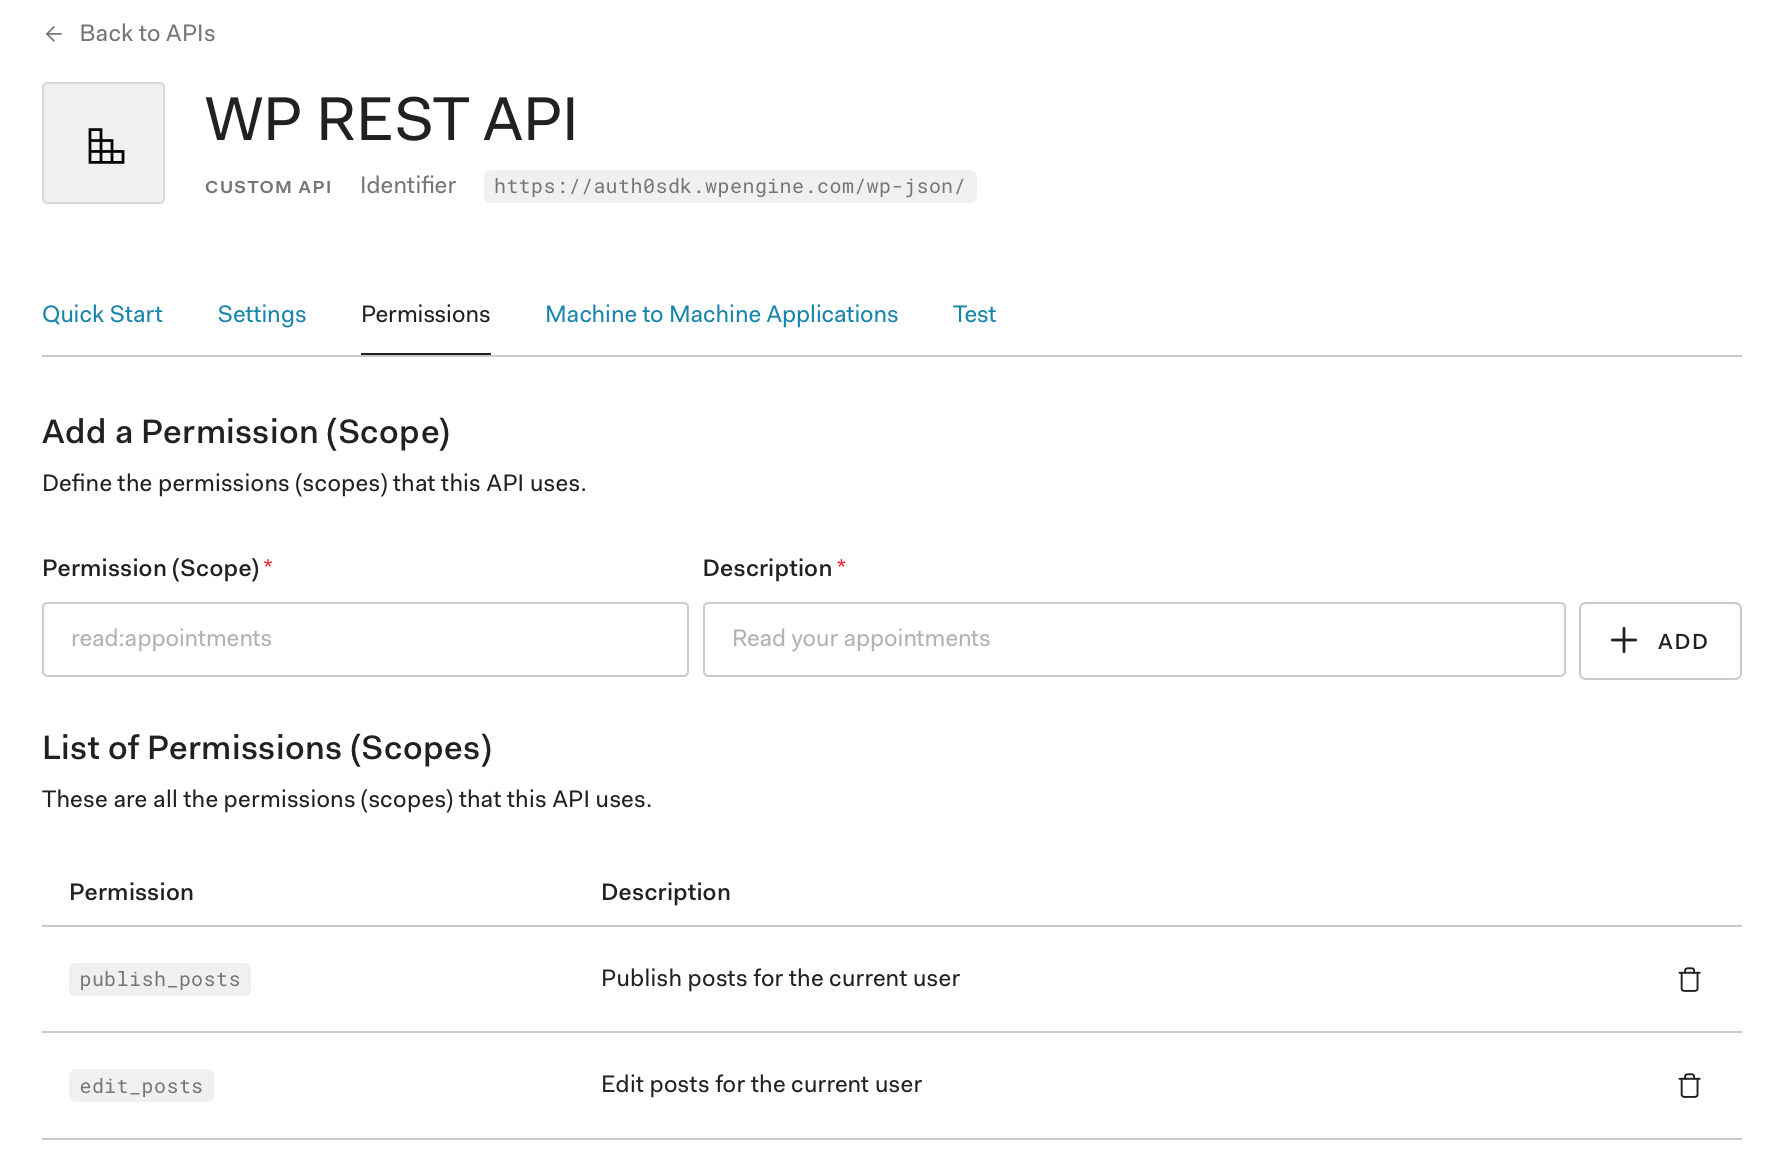 WP REST API setup in Auth0